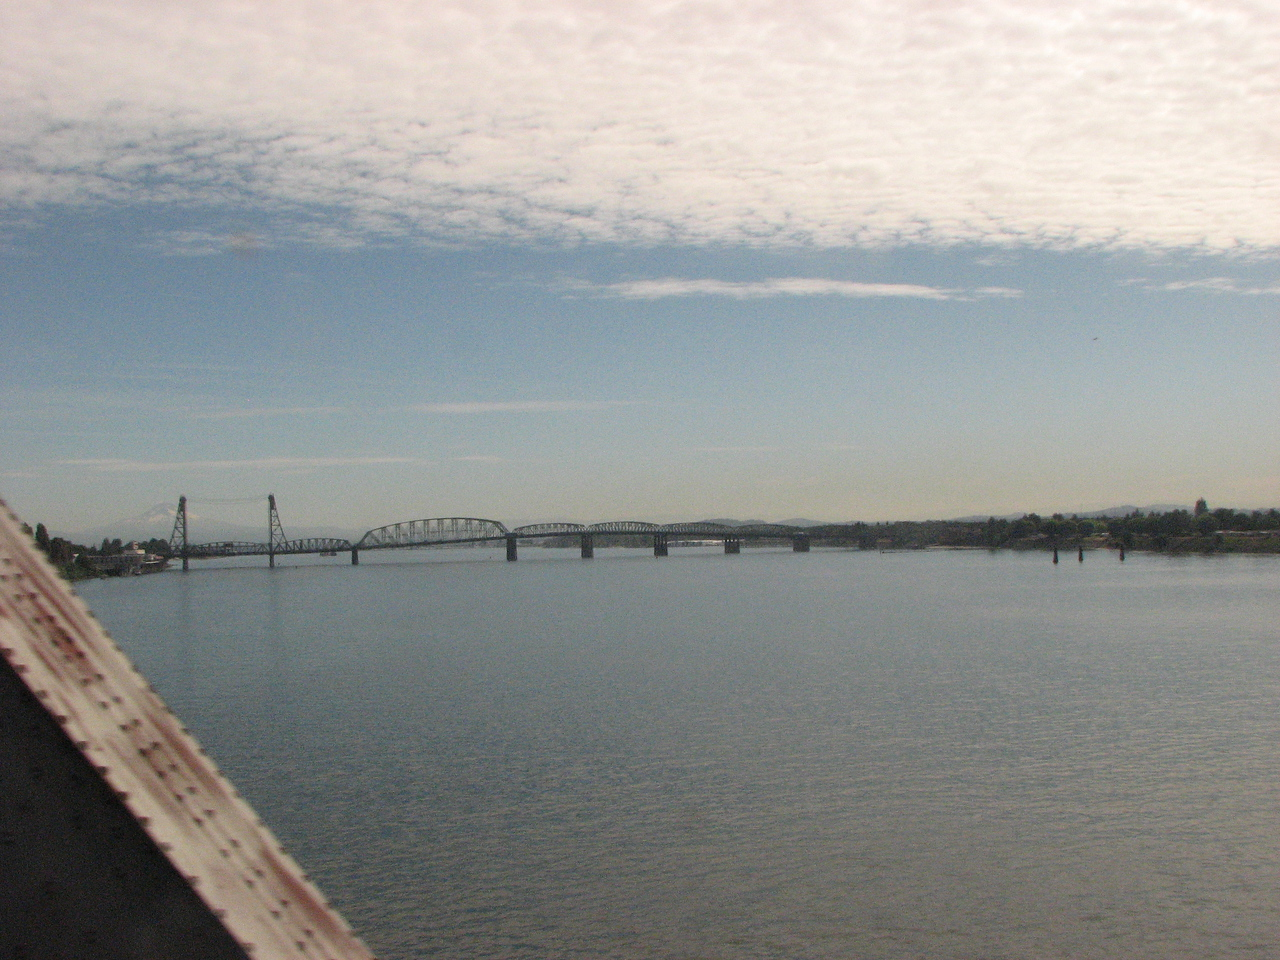 Crossing the Columbia for the first time.